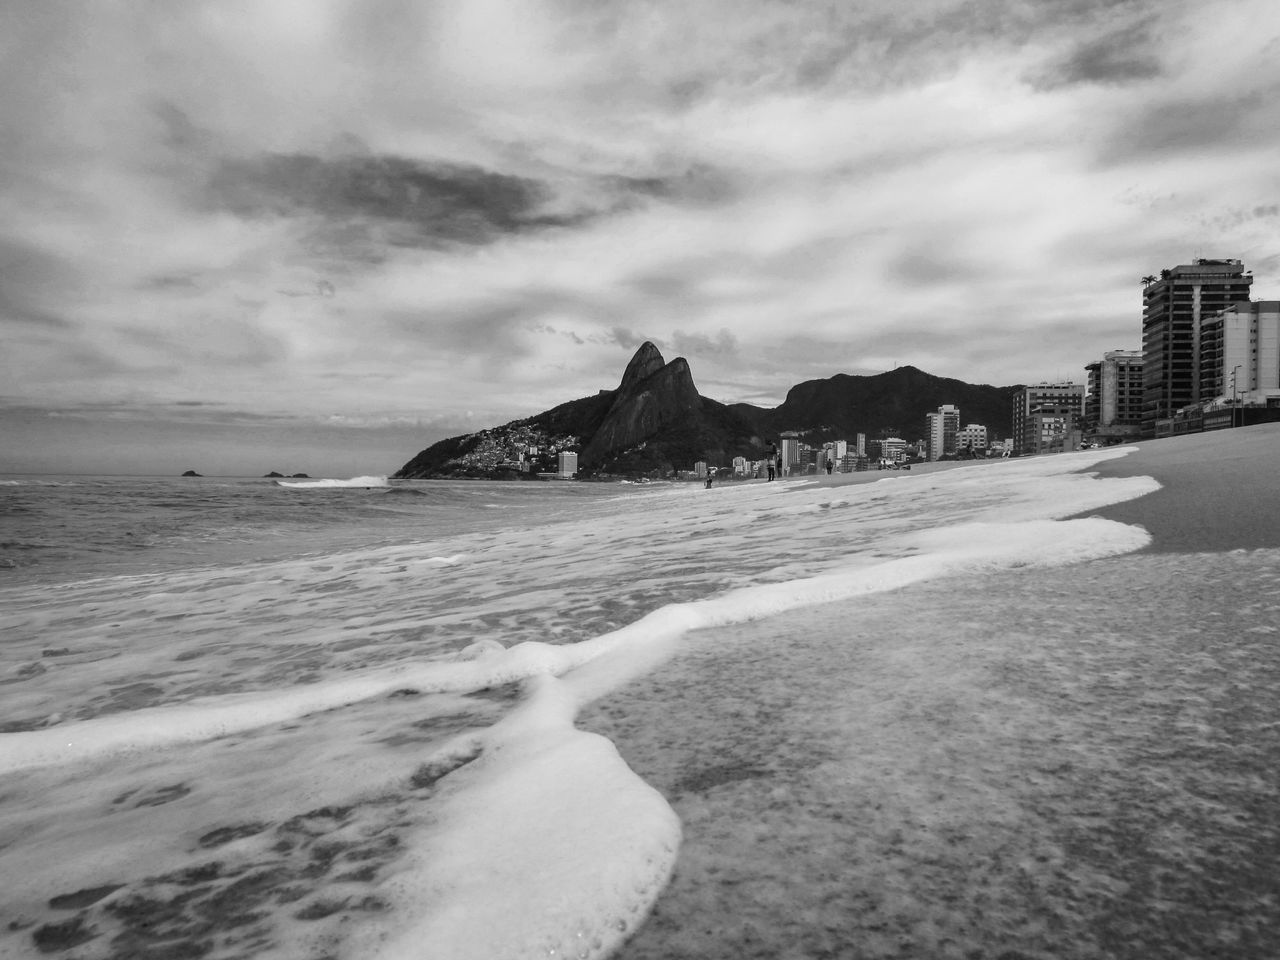 The beauty of Rio Beach Beauty In Nature Cloud - Sky Coastline Day Horizon Over Water Ipanema Beach Nature No People Outdoors Rio De Janeiro Sand Sea Shore Sky Water Wave